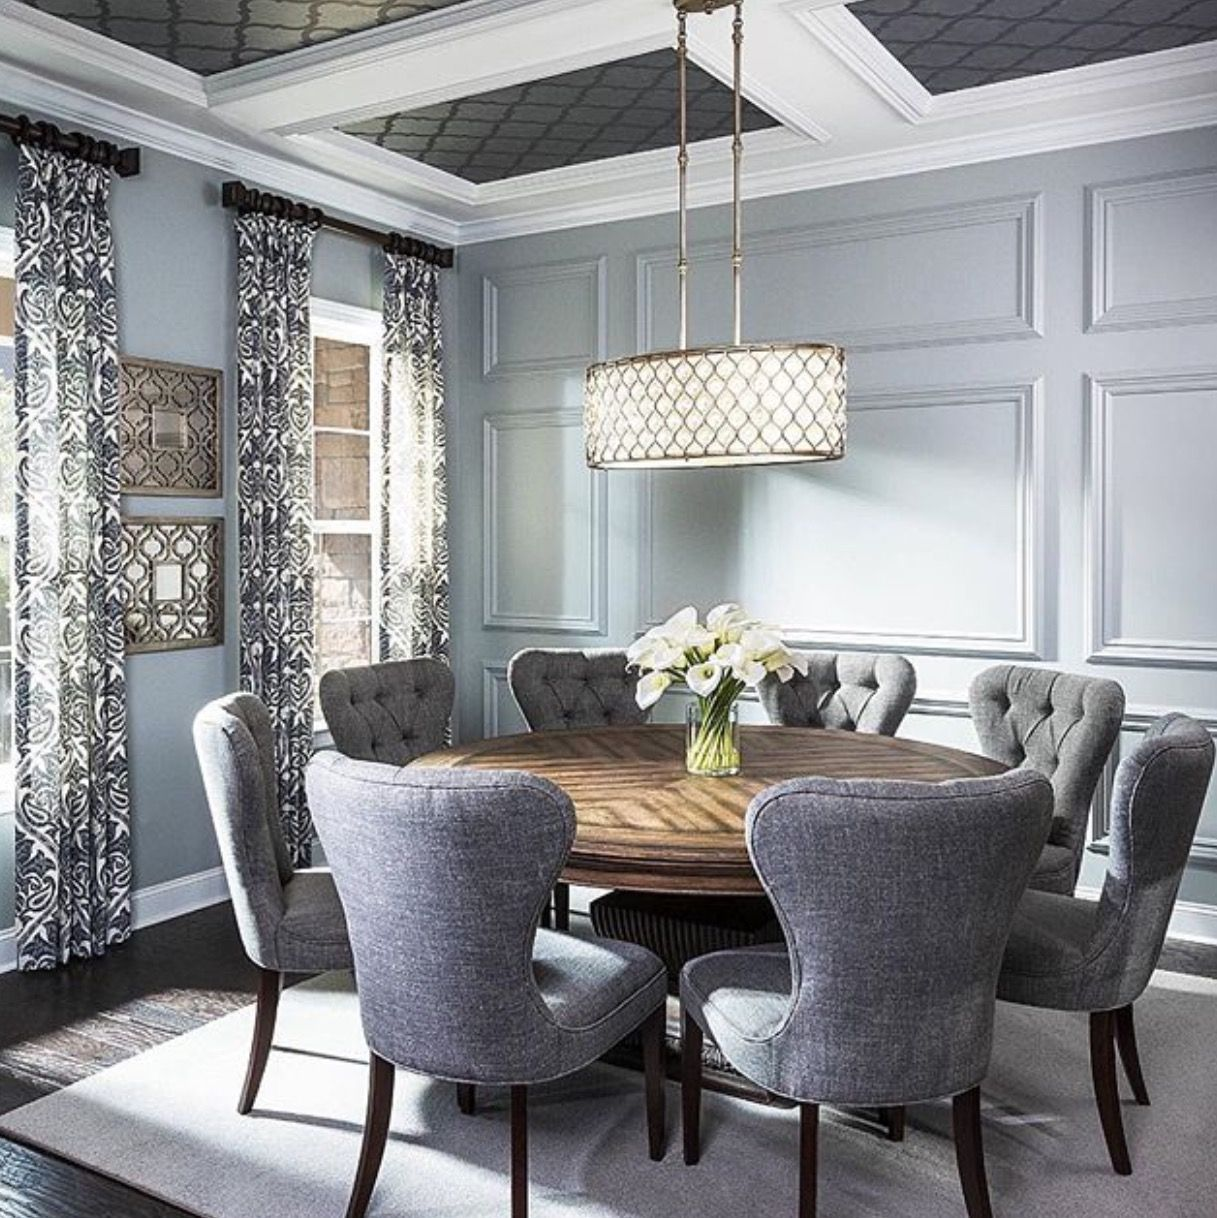 Simple Yet Chic Round Dinning Room Table, Round Table And Chairs, Round Dining  Room